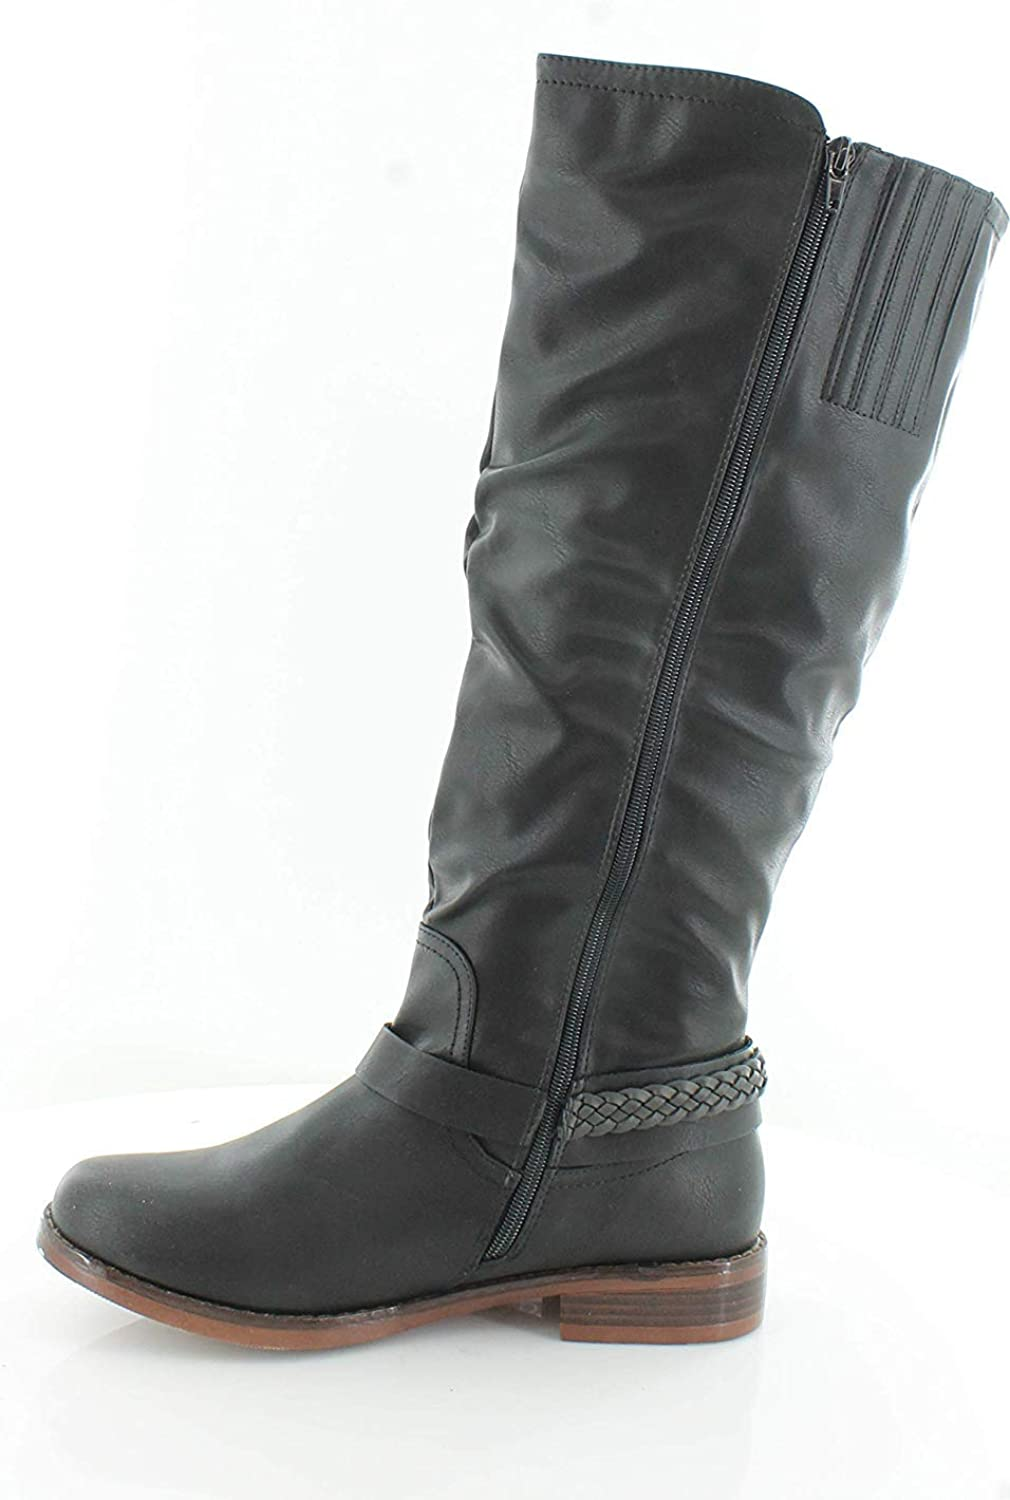 XOXO Mauricia Tall Boots Black 7M